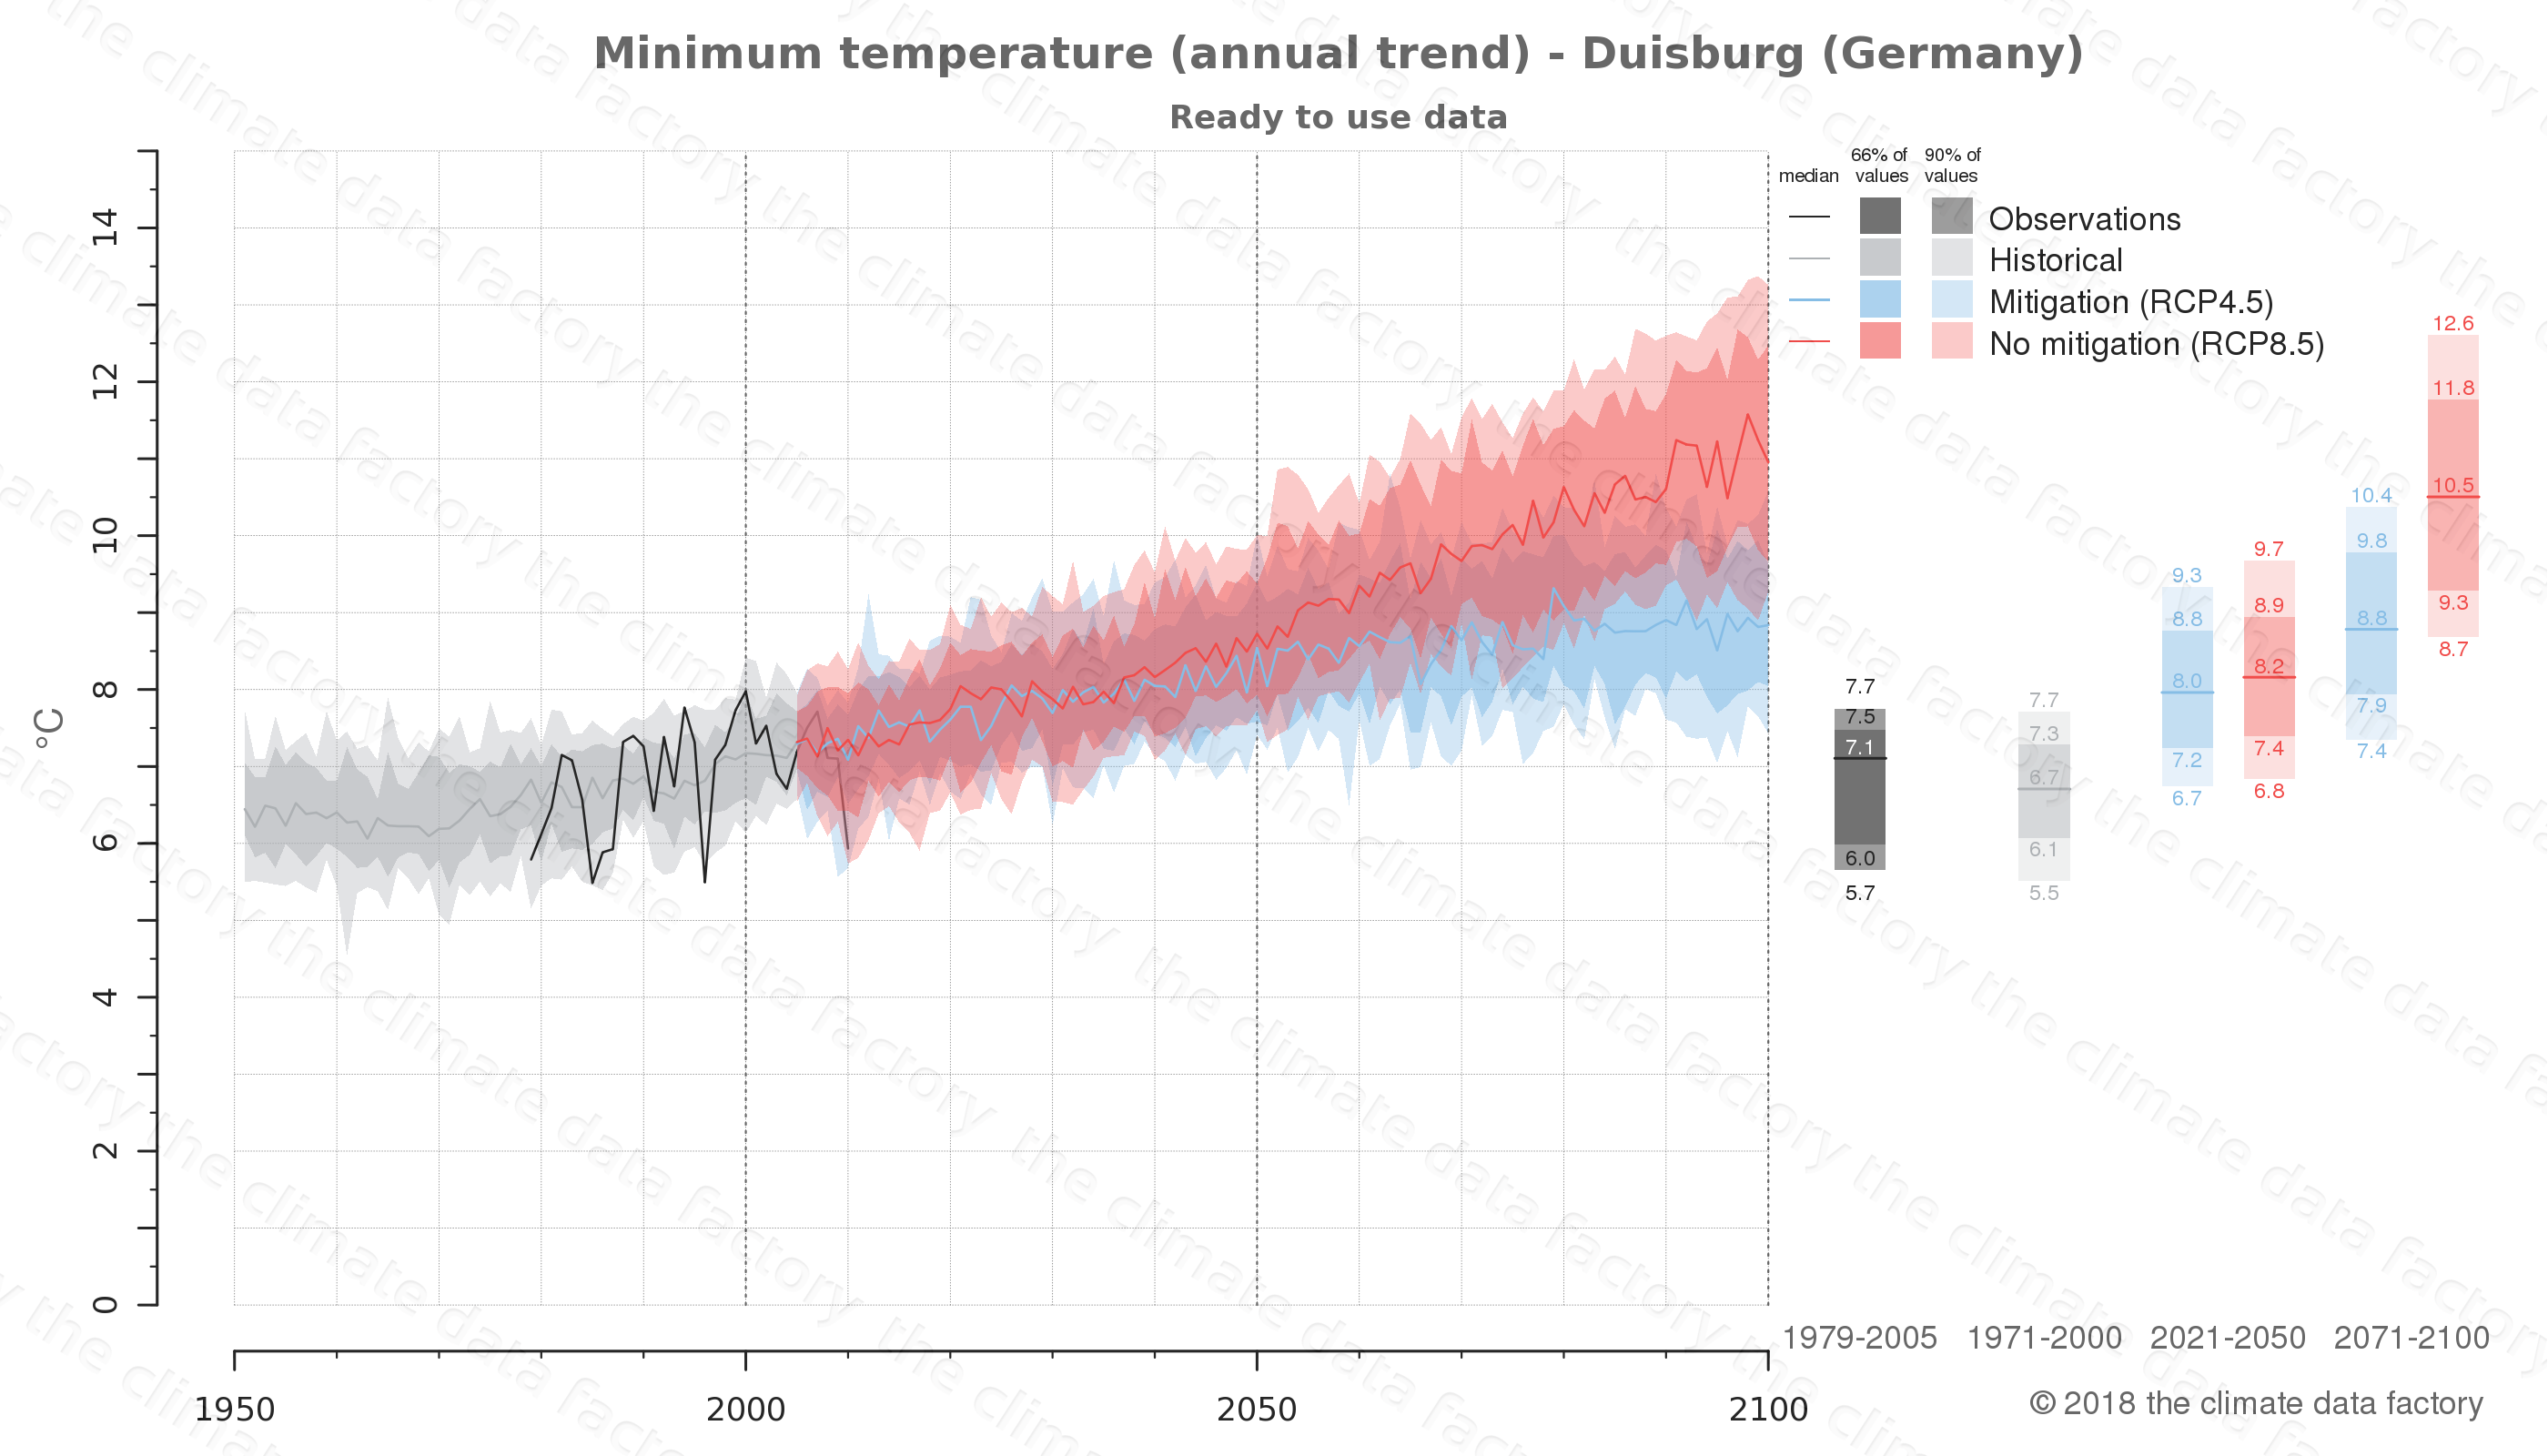 climate change data policy adaptation climate graph city data minimum-temperature duisburg germany